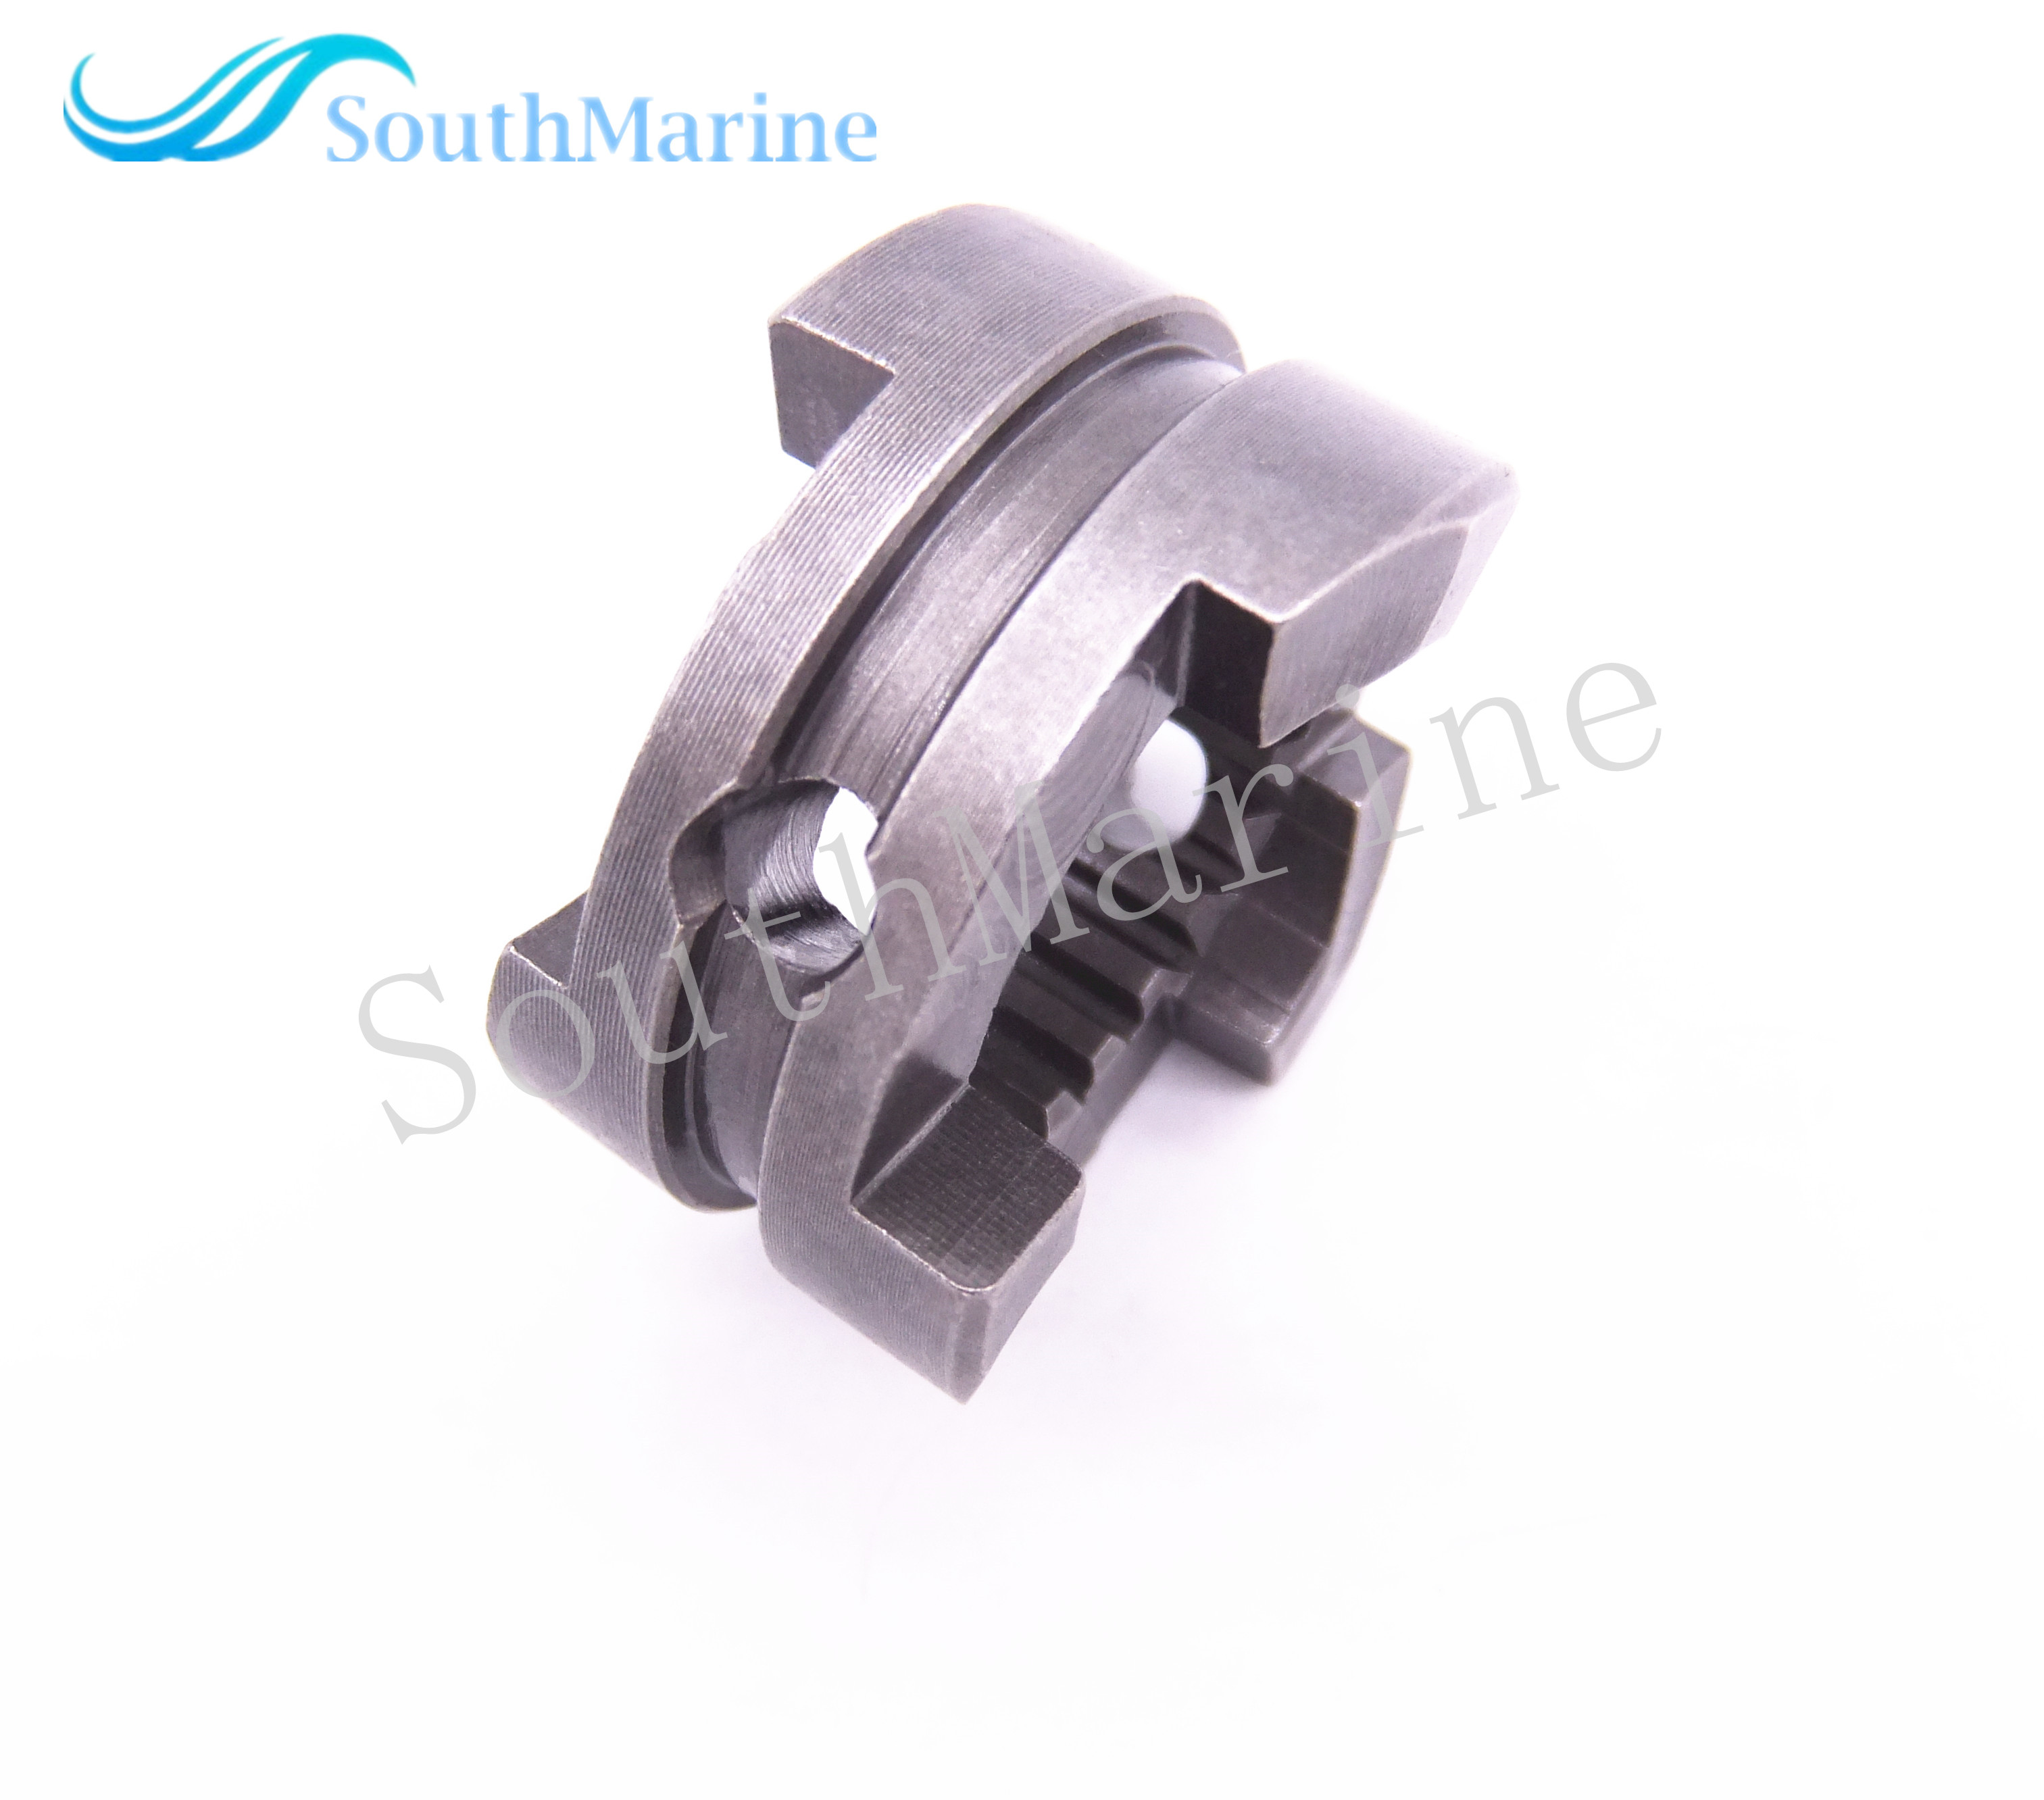 682-45631-00 Boat Motor Clutch Dog for Yamaha Outboard Engine 4-Stroke F15  Free Shipping